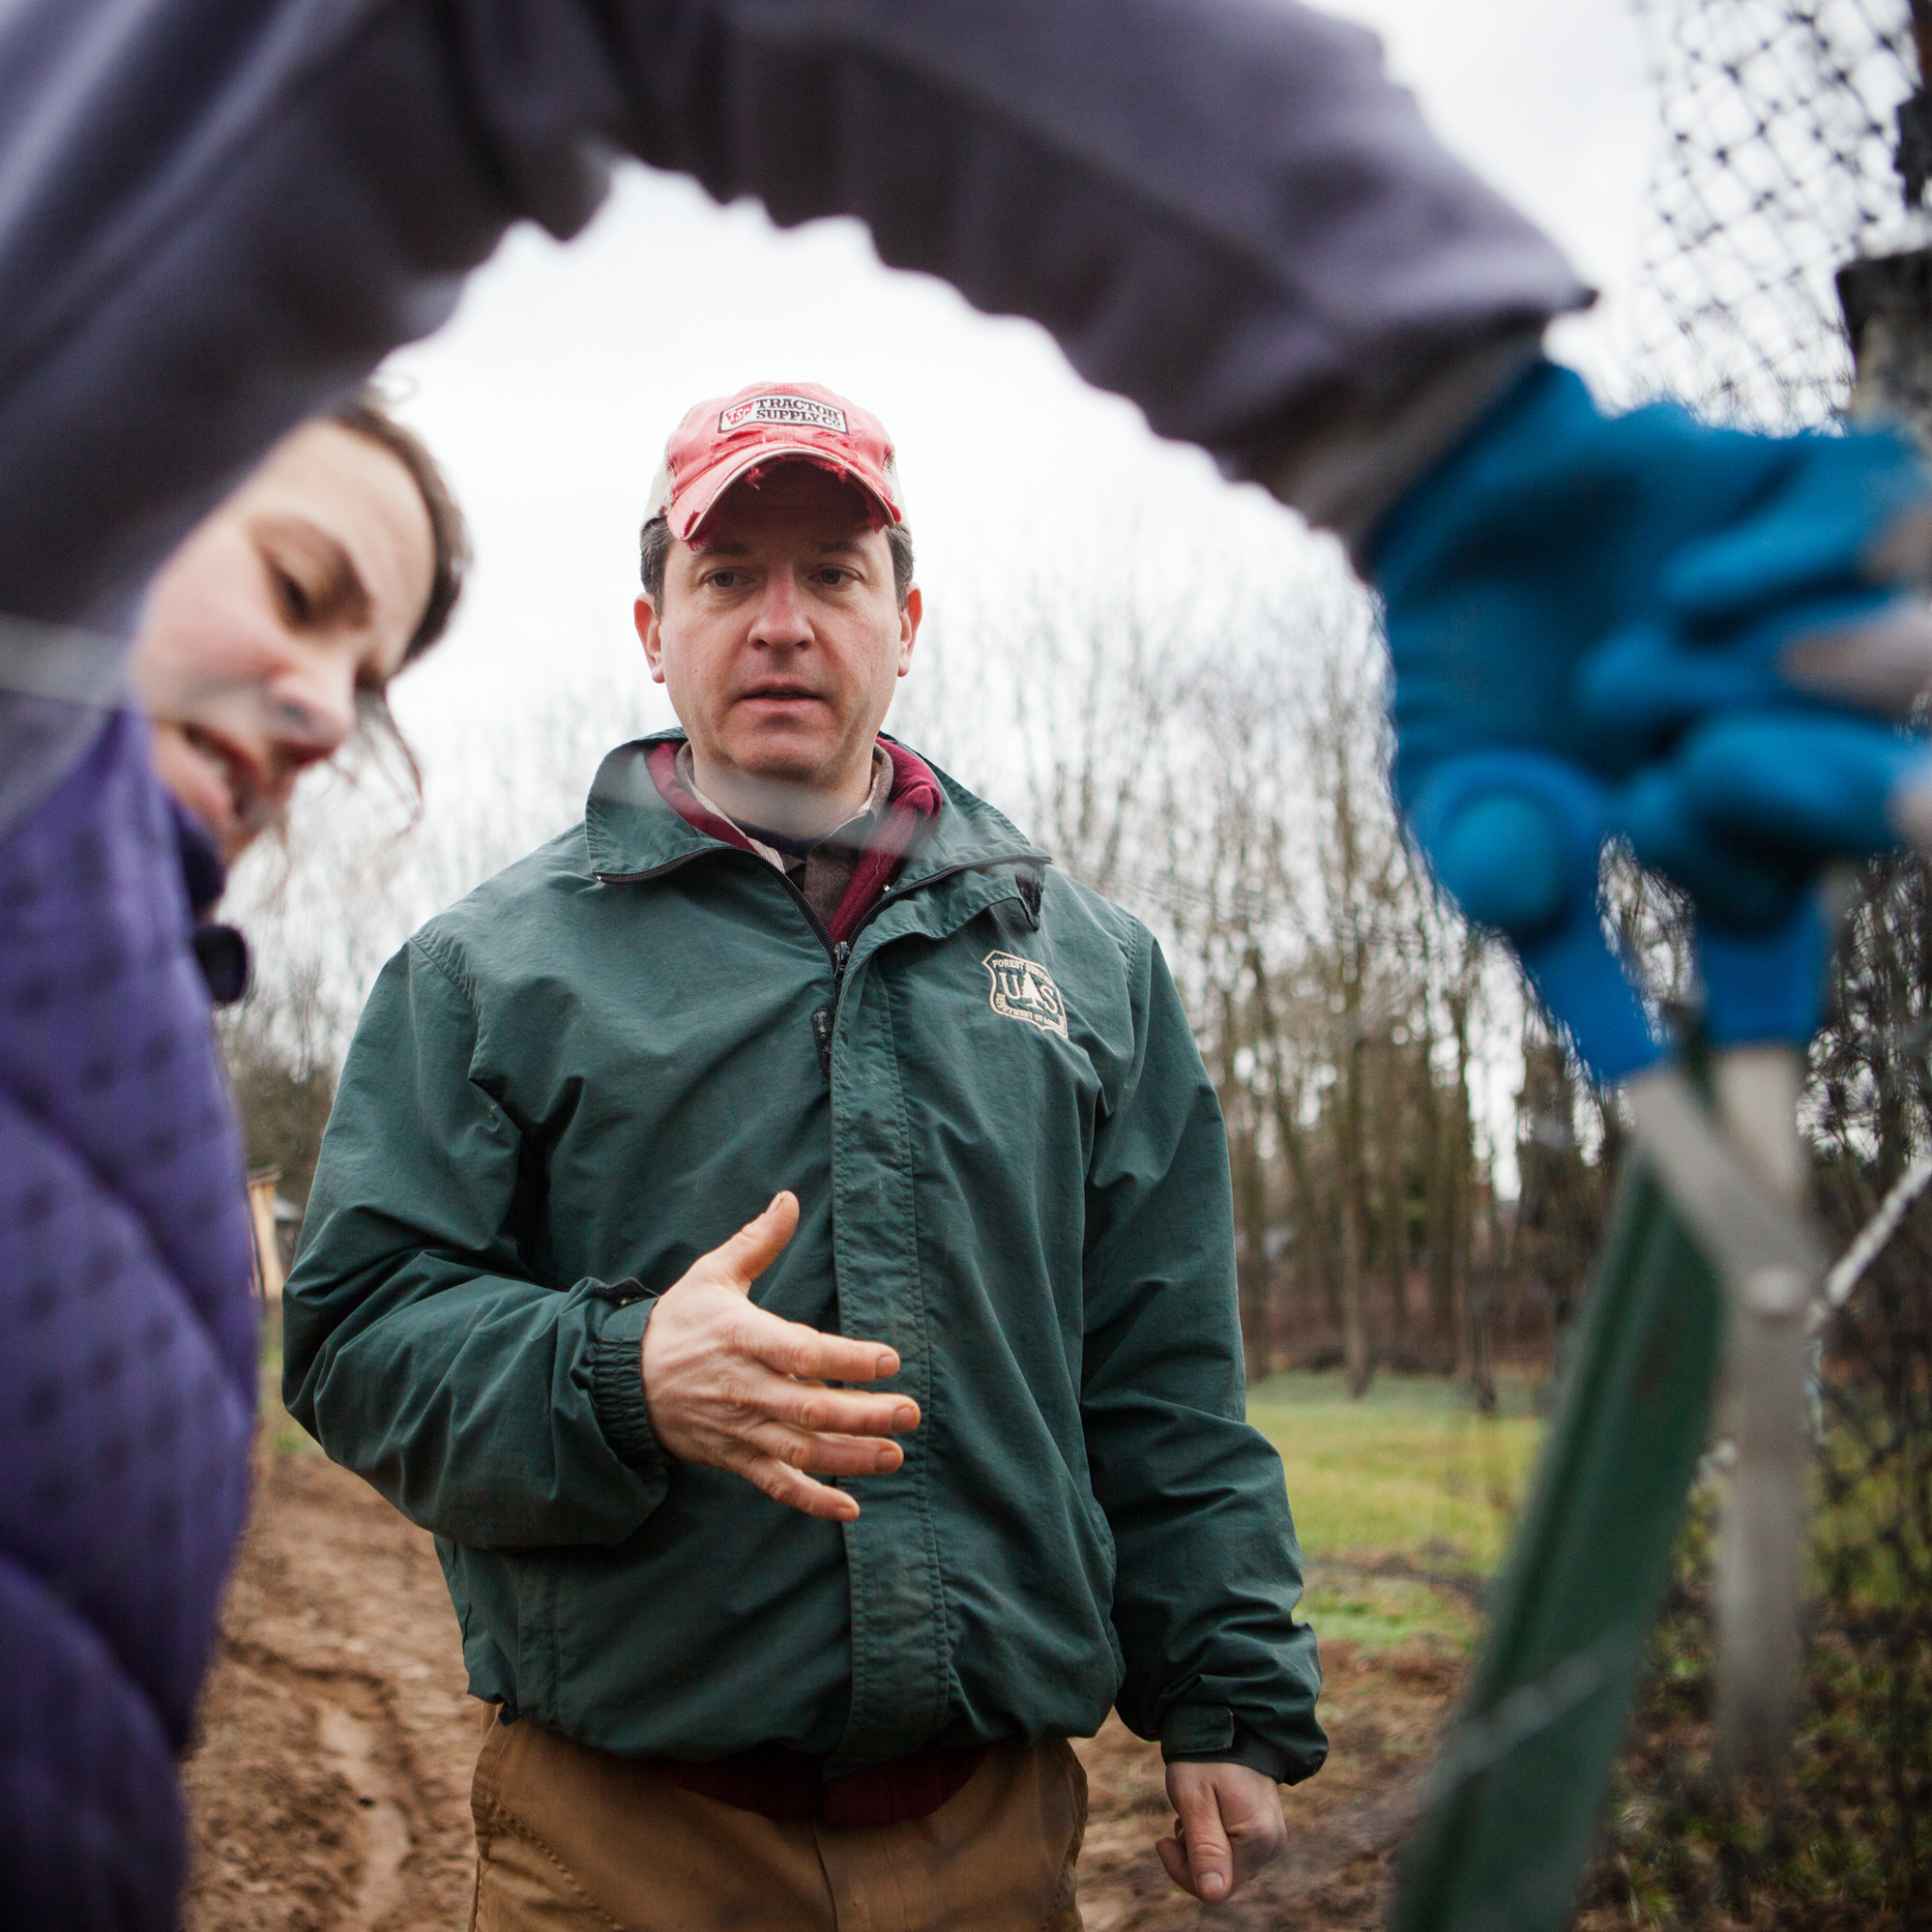 Chris Guerre and his wife, Sara, repair a fence at their farm in Great Falls, Va.